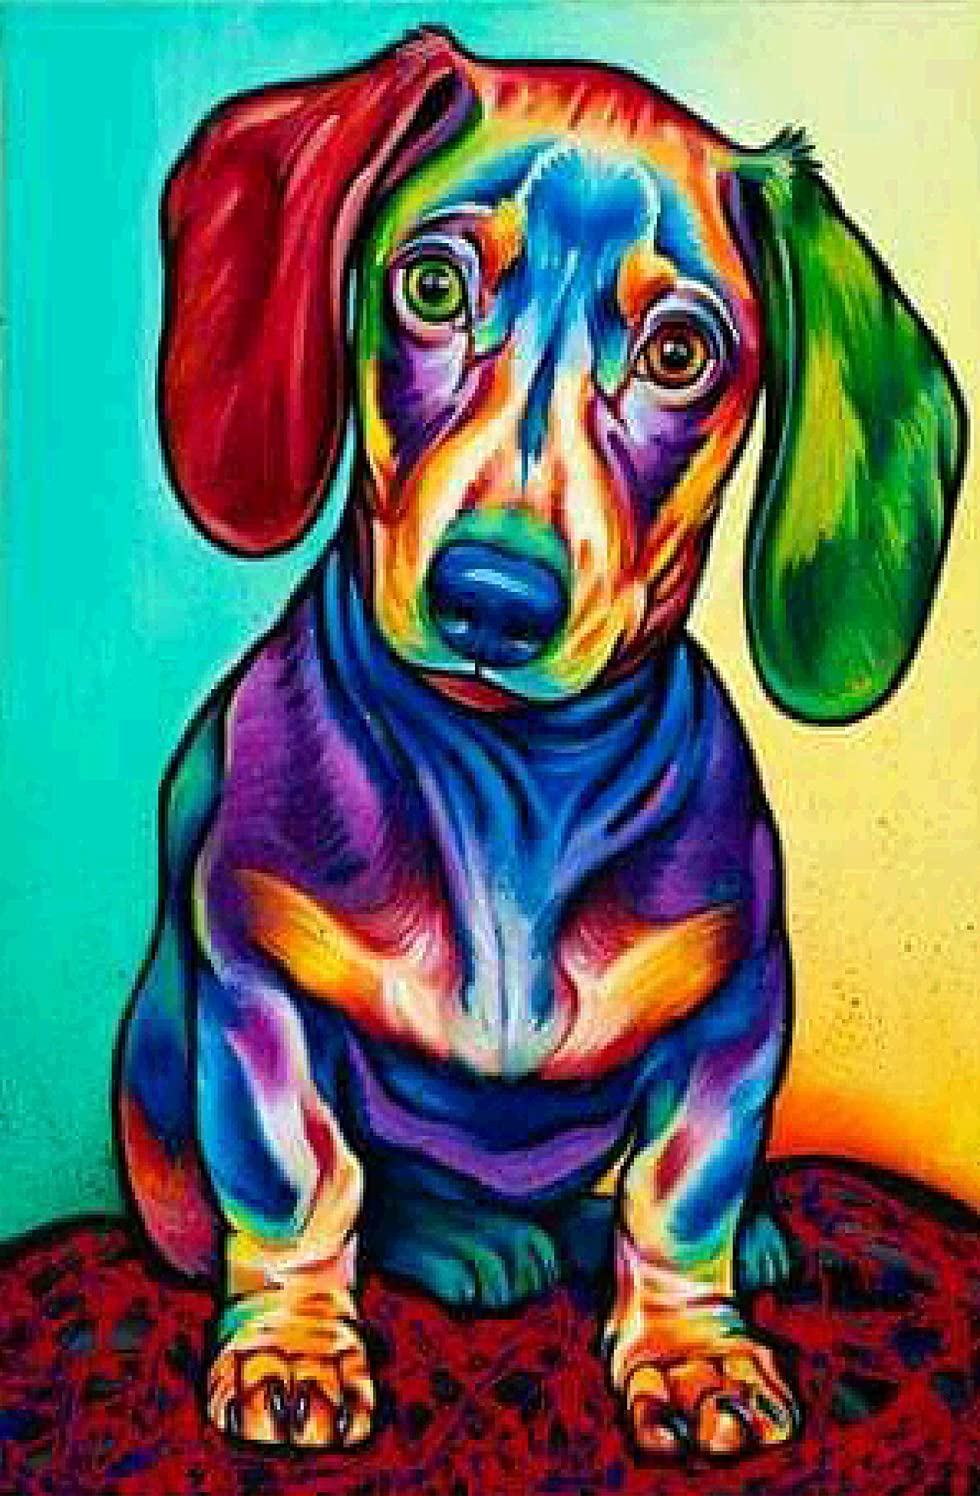 TianMaiGeLun New DIY 5D Diamond Painting Kits Diamond Embroidery Art Painting Pasted Paint by Number Kits Stitch Craft Kit Home Decor Wall Sticker - Colorful Dog, 35x25cm